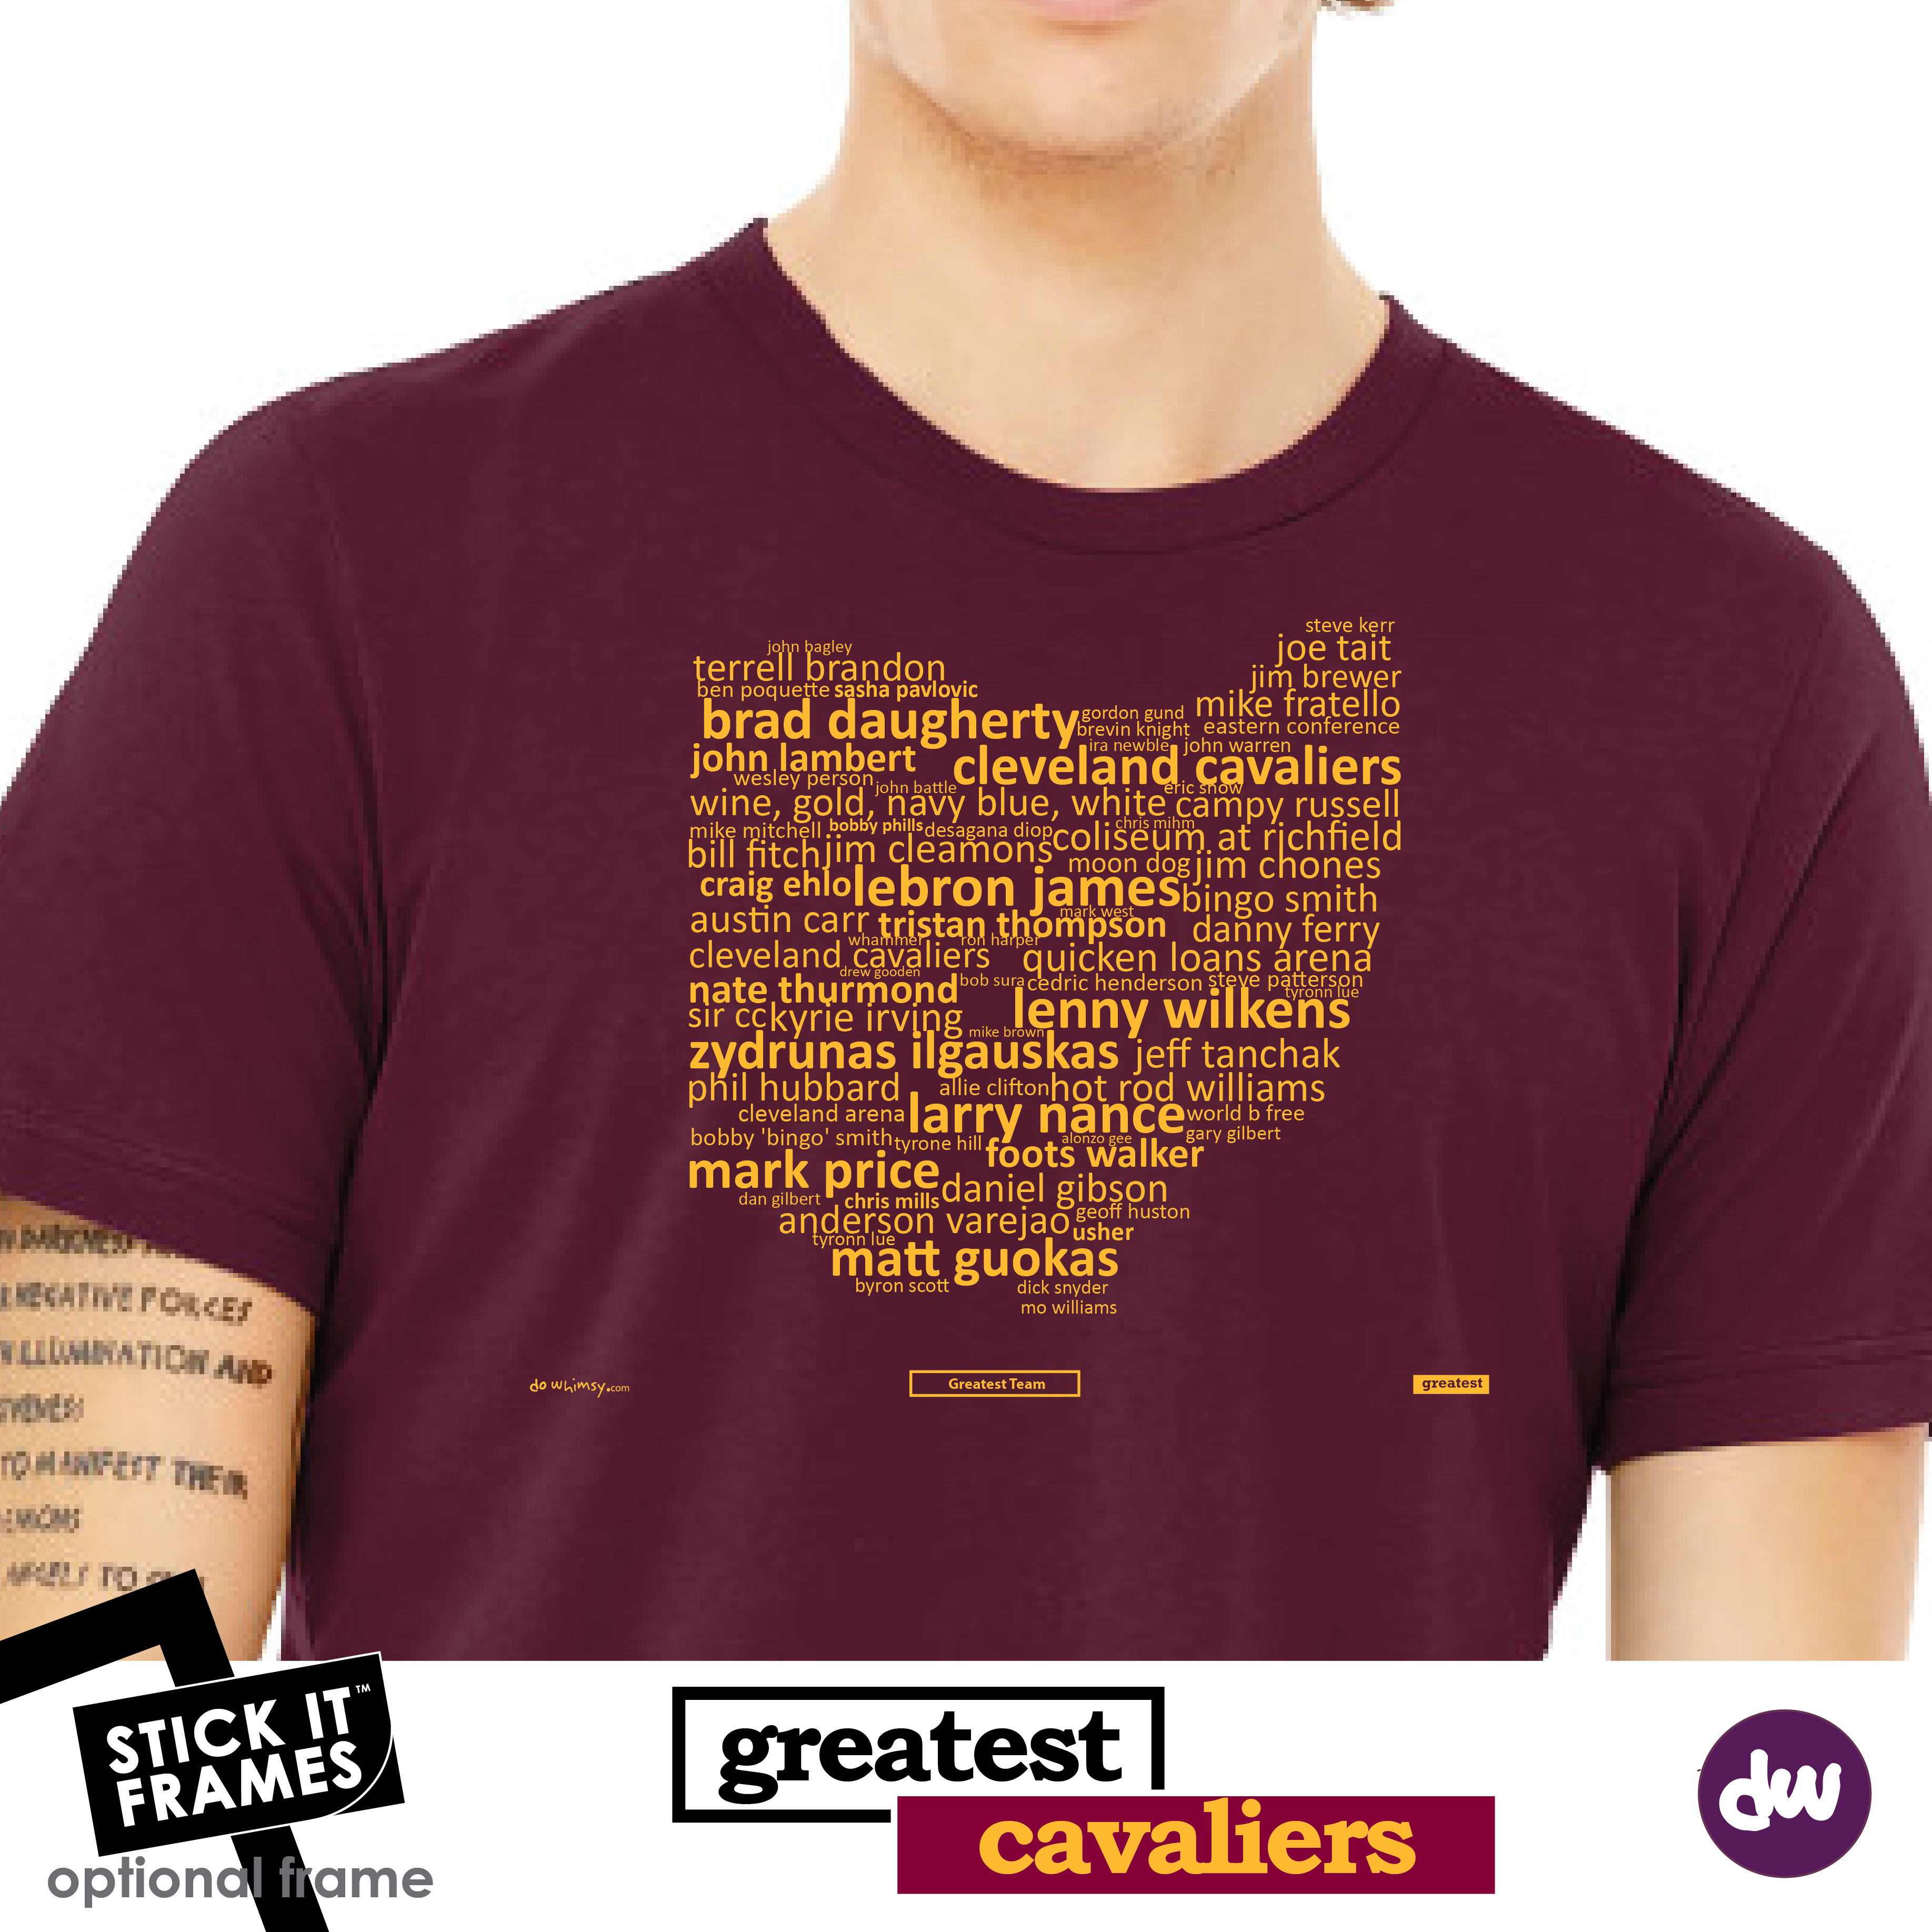 Greatest Ohio (Cavaliers) - All Products (Shirt, Art, Frames (R))